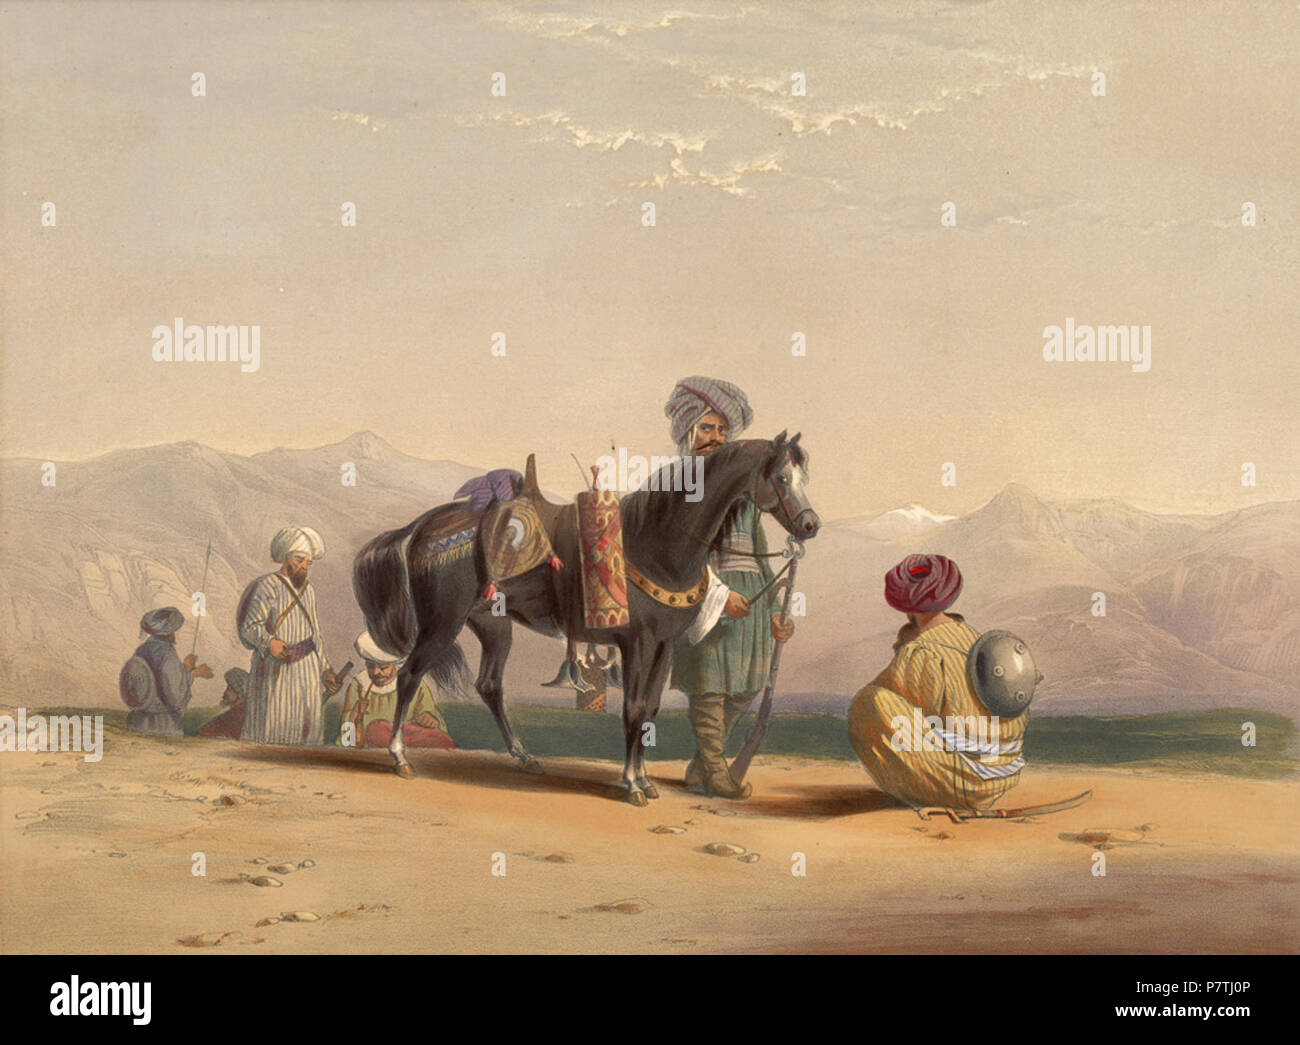 Jaunbauz, or Afghan cavalry, with horse, bearing implements for smoking This lithograph is taken from plate 17 of 'Afghaunistan' by Lieutenant James Rattray. He wrote: 'Never were a wilder, more devil-may-care set of fellows seen than the Afghan cavalry'. Known as Jaanbaz (meaning 'life gamblers'), the cavalry in the Shah's service often became mercenaries in the British army. Heavily armed, and very often professional robbers, they became soldiers when it suited them, said Rattray: 'They take our service because we paid them well and regularly, but a great deal of the savoir faire was require Stock Photo